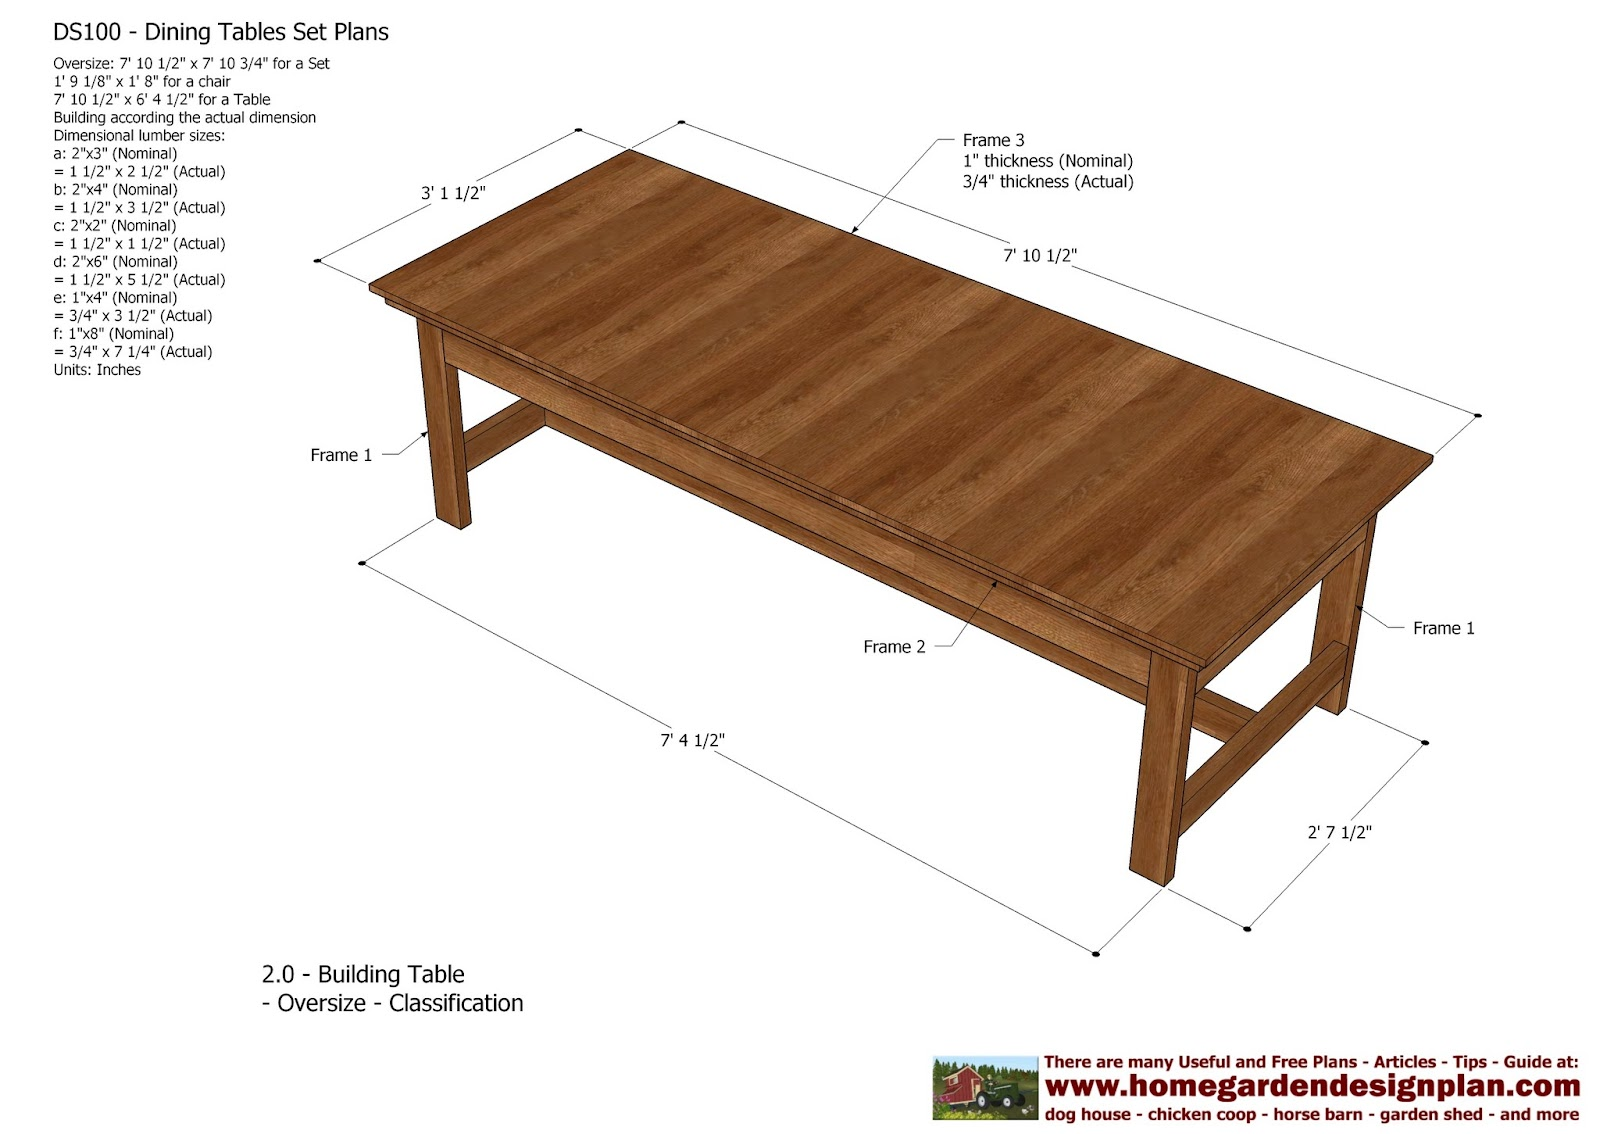 home garden plans: DS100 - Dining Table Set Plans ...